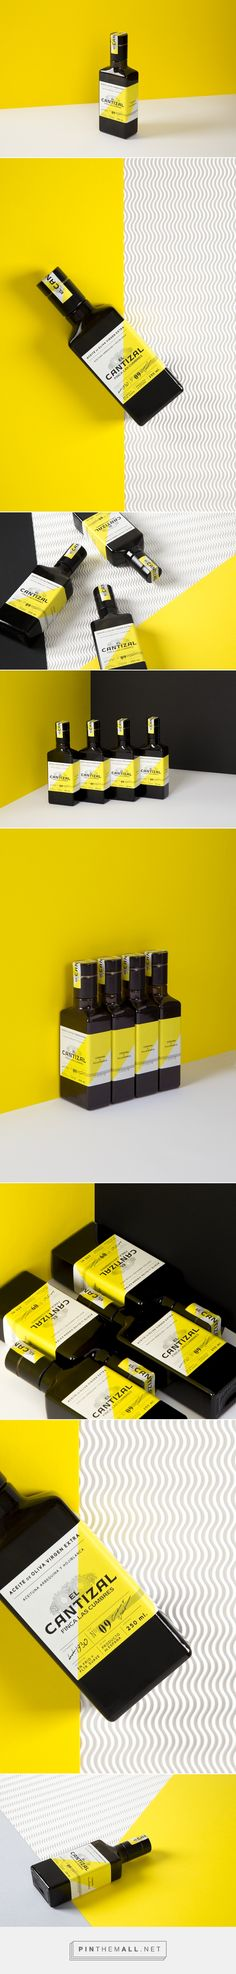 EL CANTIZAL // Extra Virgin Olive Oil on Behance - created via https://pinthemall.net